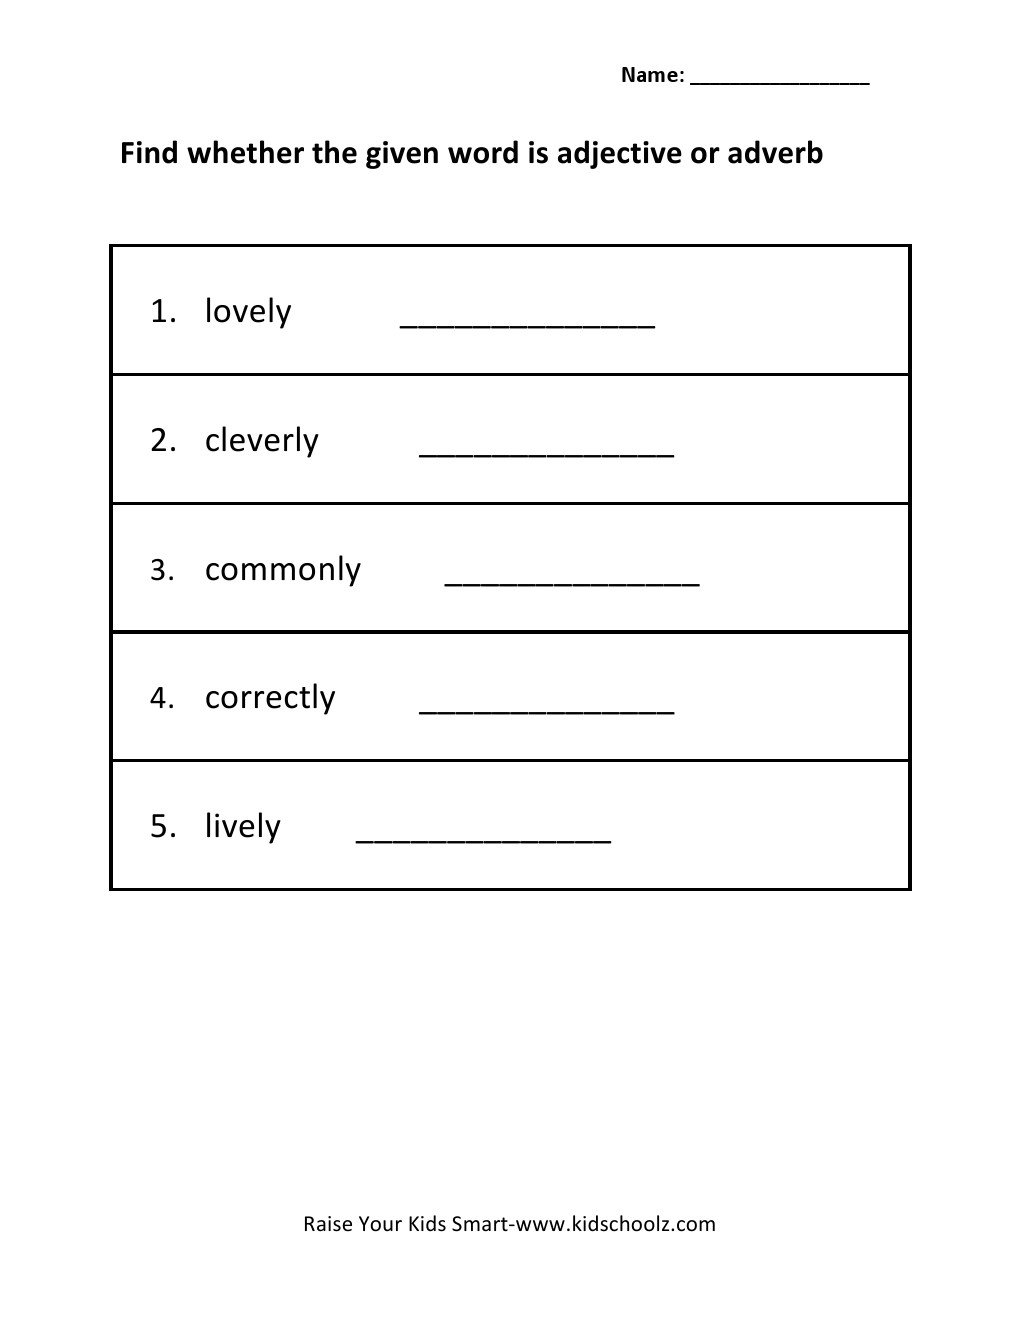 Grade 4 - Identify Adjective and Adverb Worksheet 4 - Kidschoolz